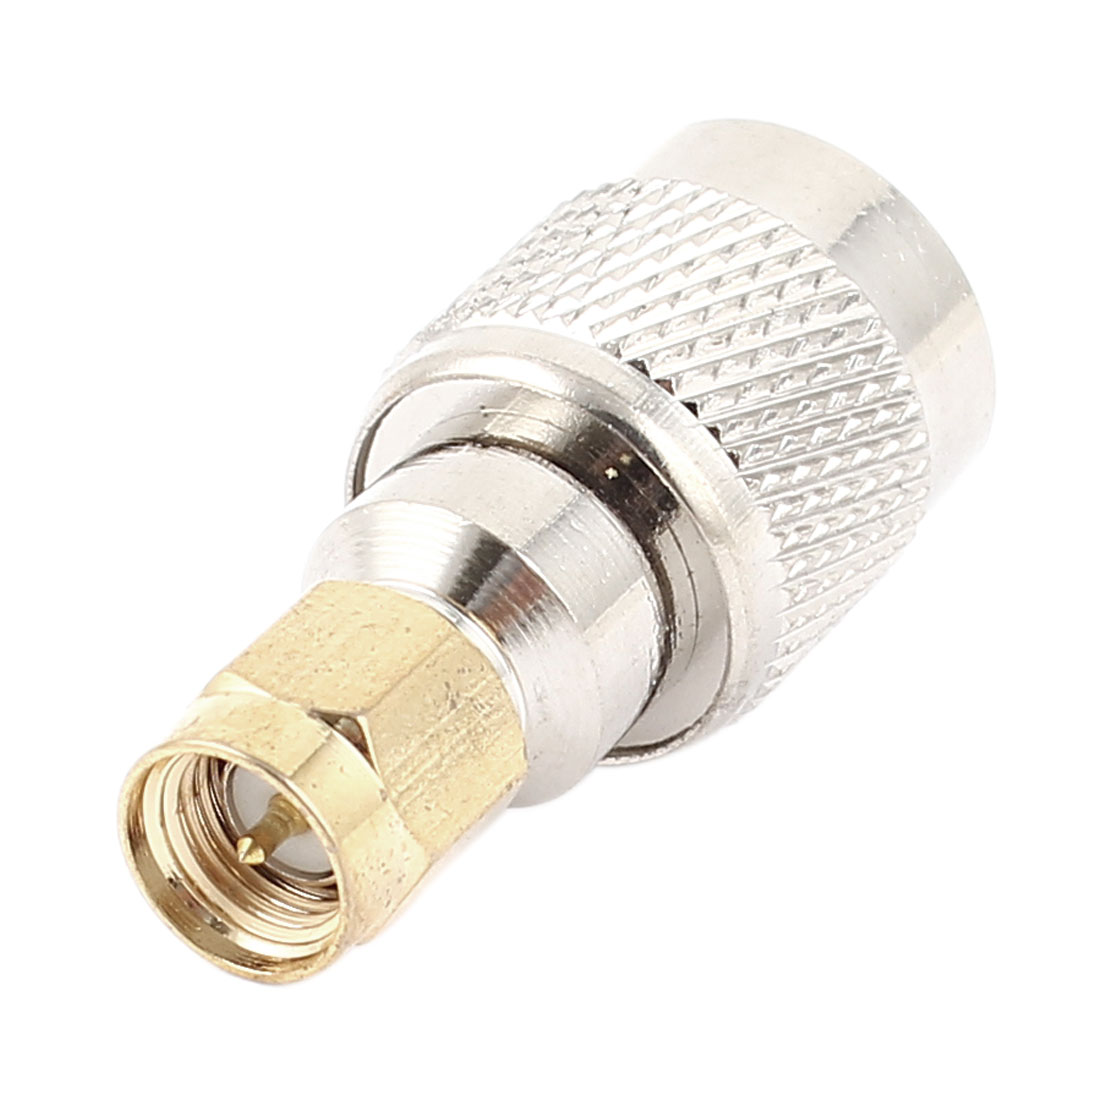 TNC Male to SMA Male M/M Straight Adapter RF Coaxial Cable Connector